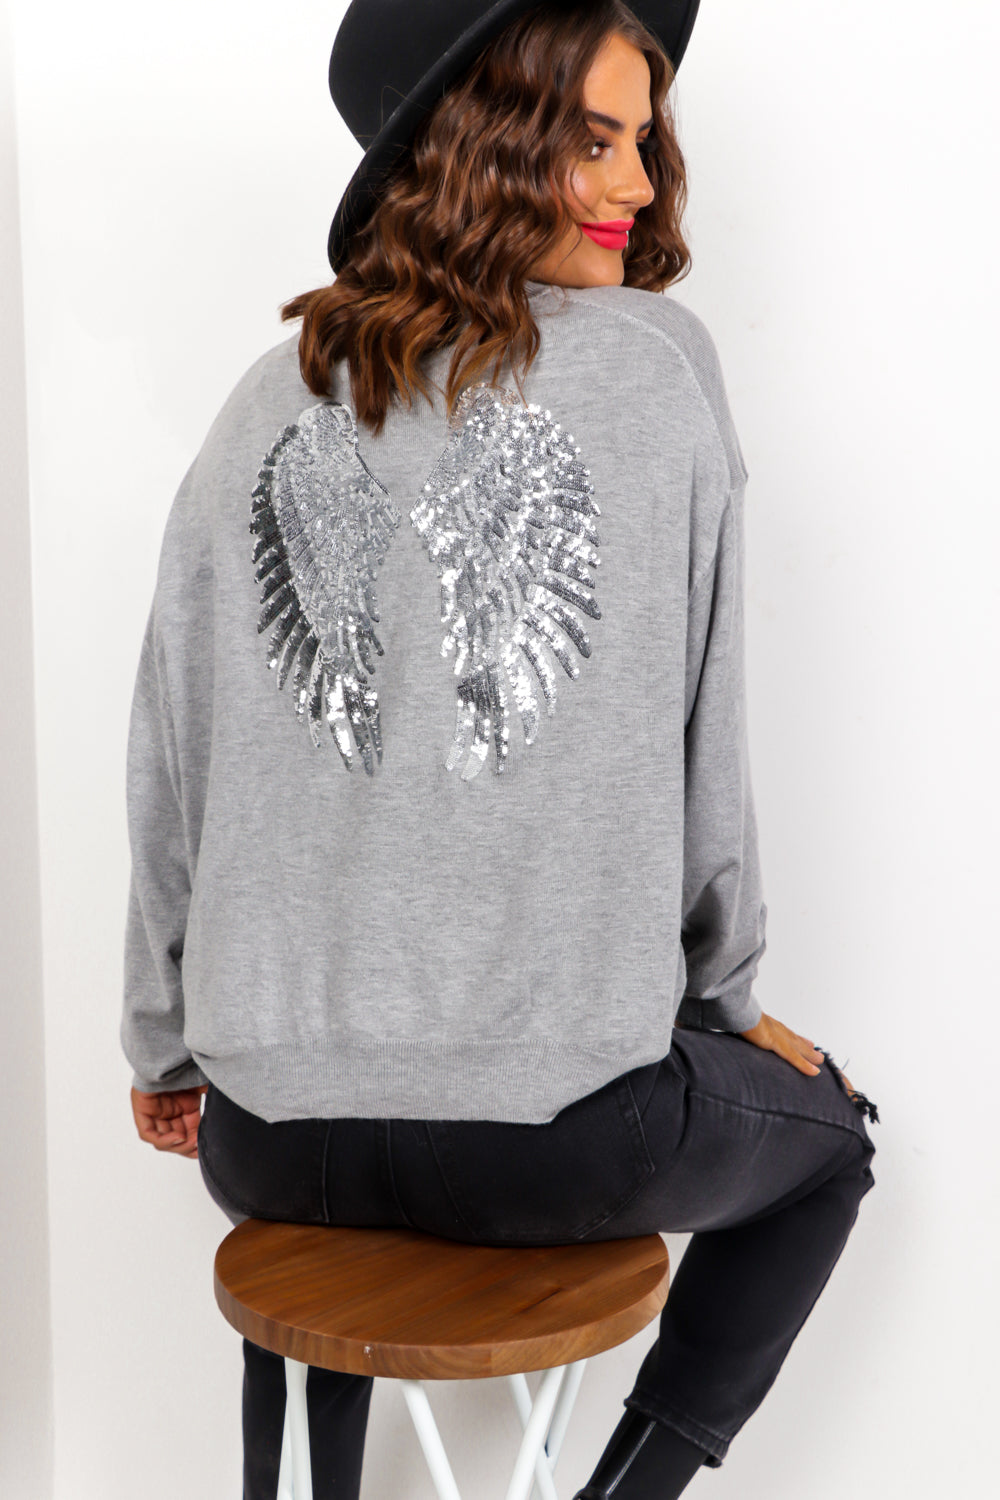 Angelic - Grey Silver Sequin Knitted Jumper